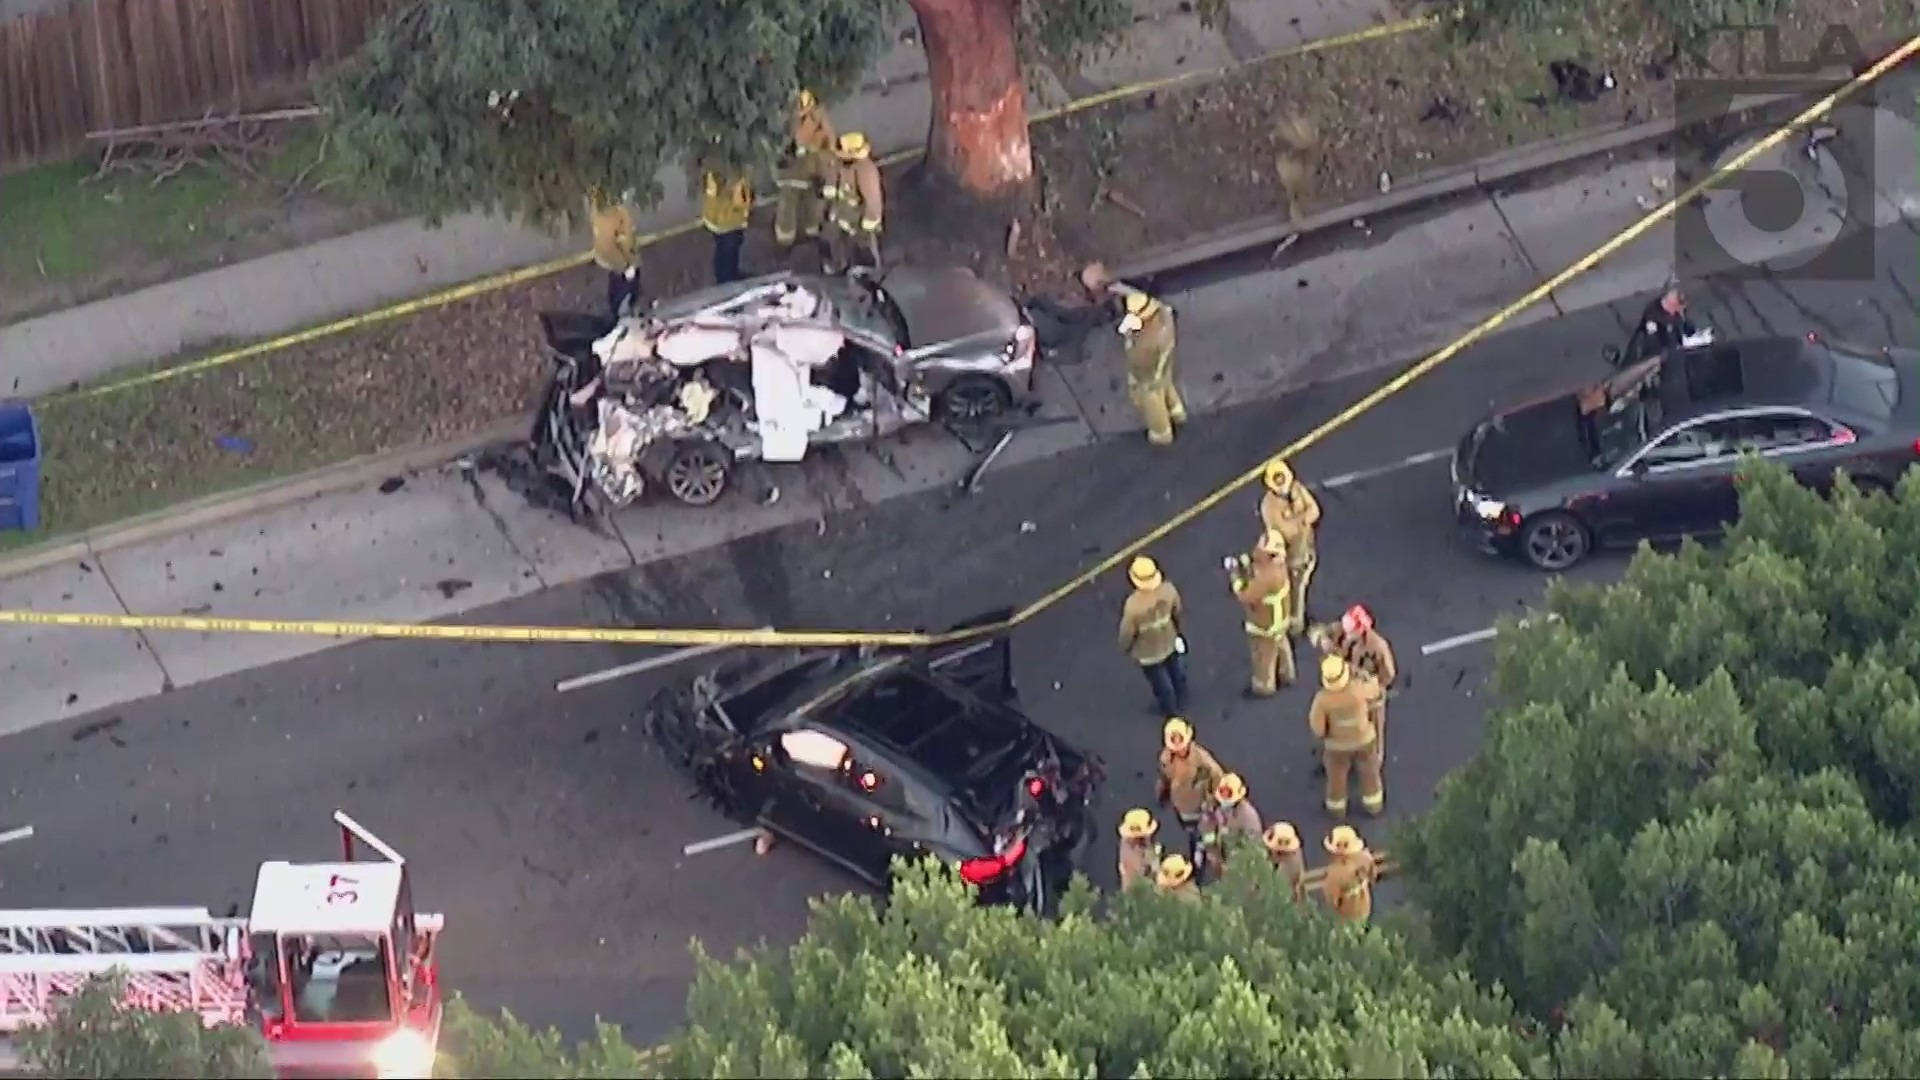 A woman was killed and a teenager was hospitalized in a West Los Angeles car crash on Feb. 17, 2021. (KTLA)